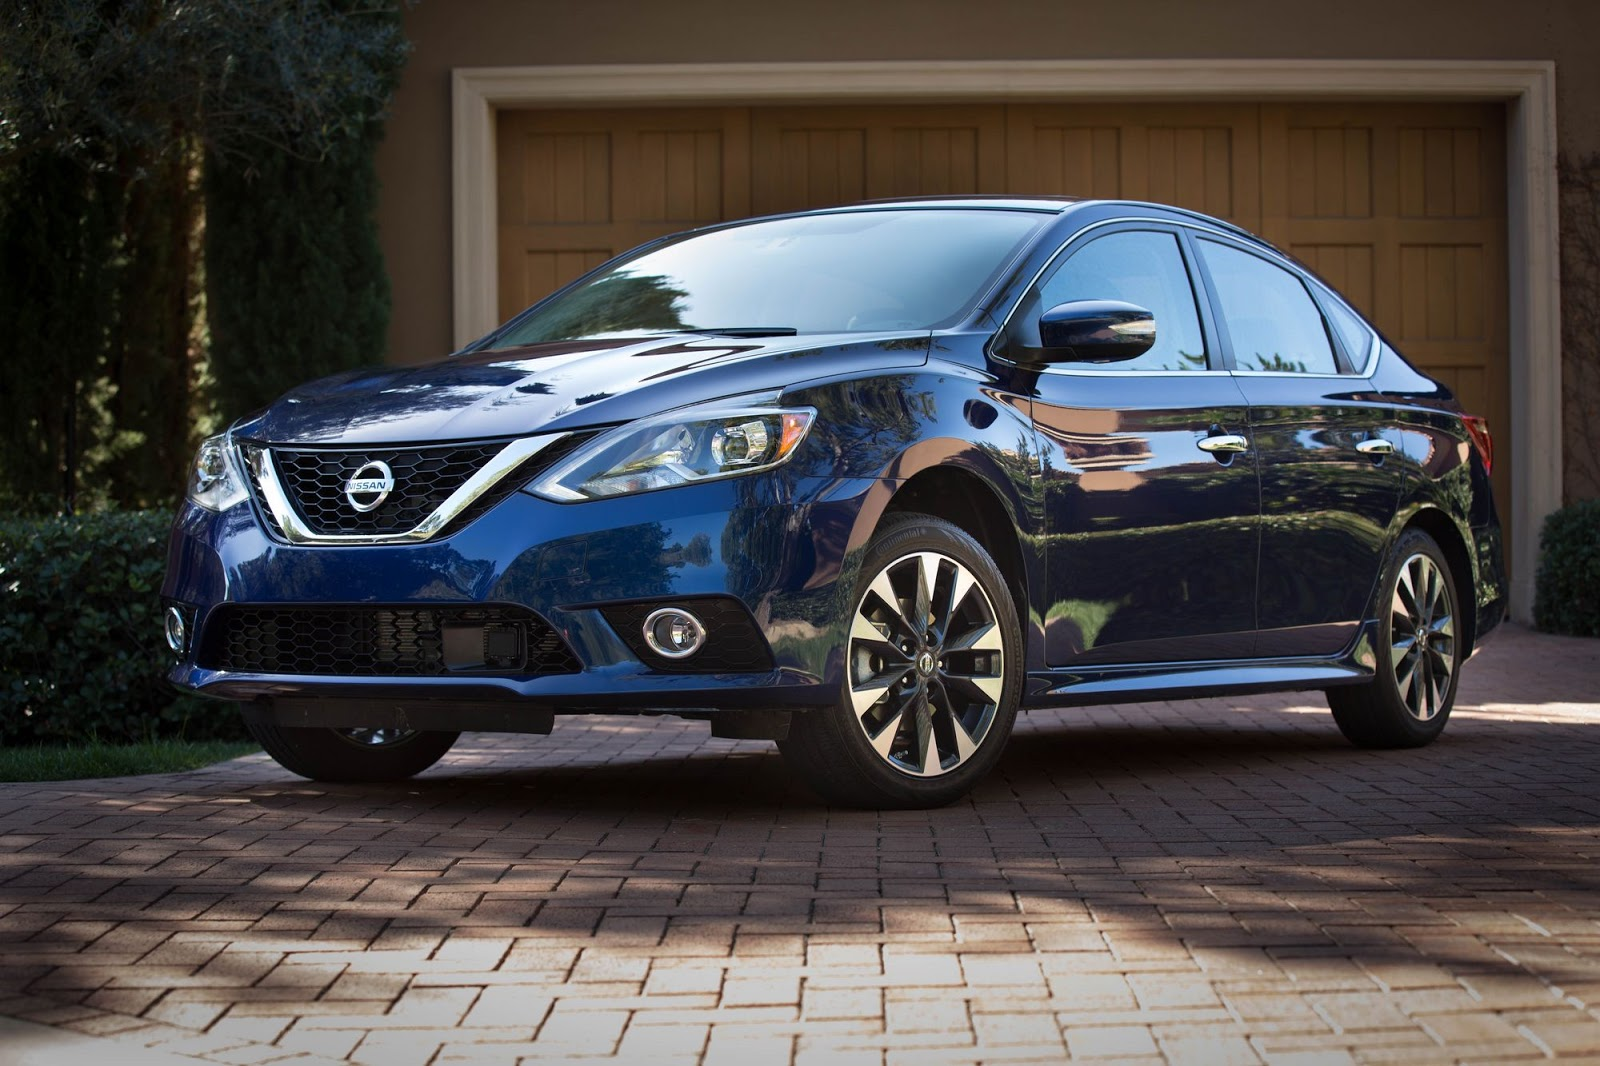 2018 nissan sentra priced from 16 990. Black Bedroom Furniture Sets. Home Design Ideas